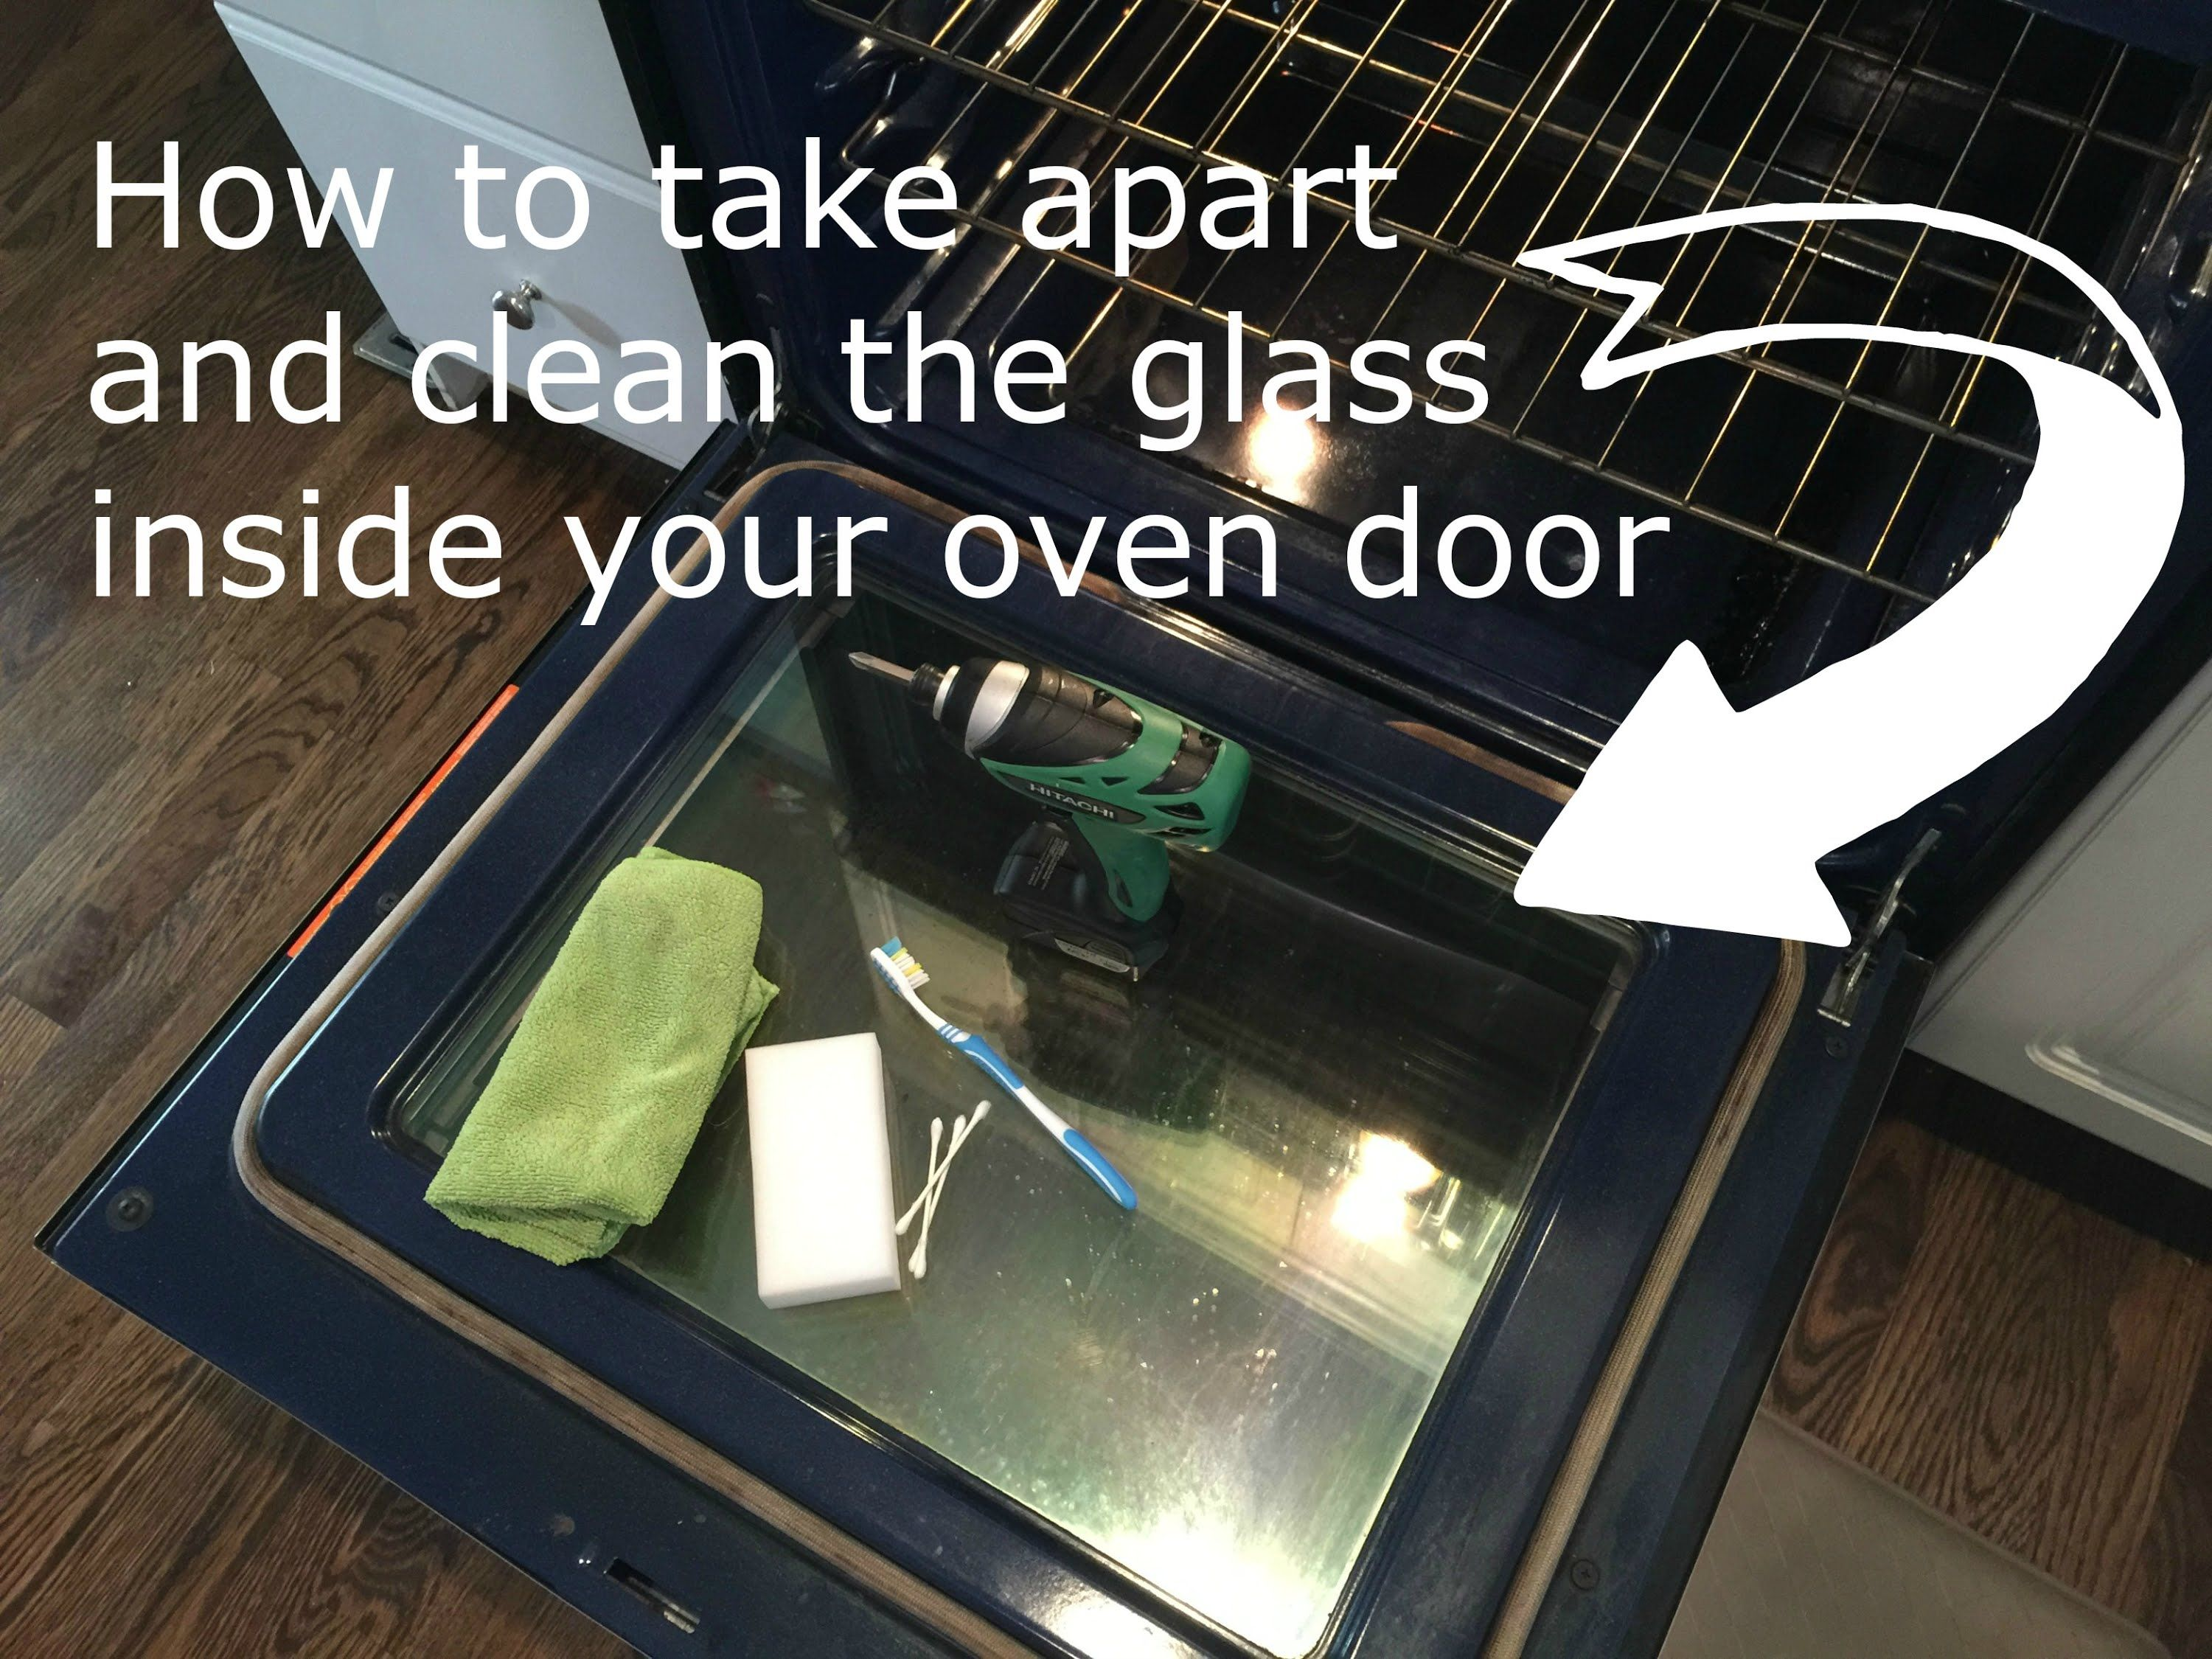 How To Clean Inside Oven Glass Doors Cleaning Hacks Spring Cleaning Cleaning Painted Walls